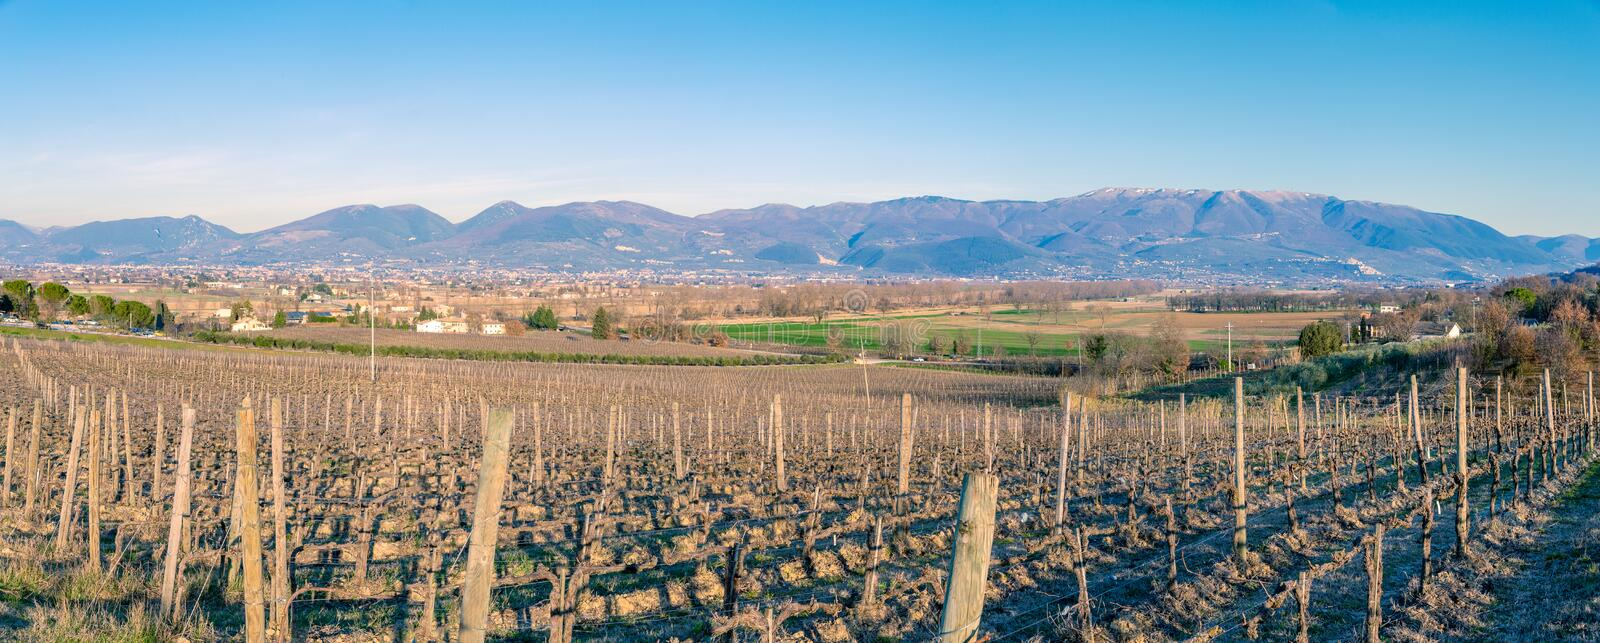 The vineyards of Montefalco, Umbria, Italy royalty free stock image